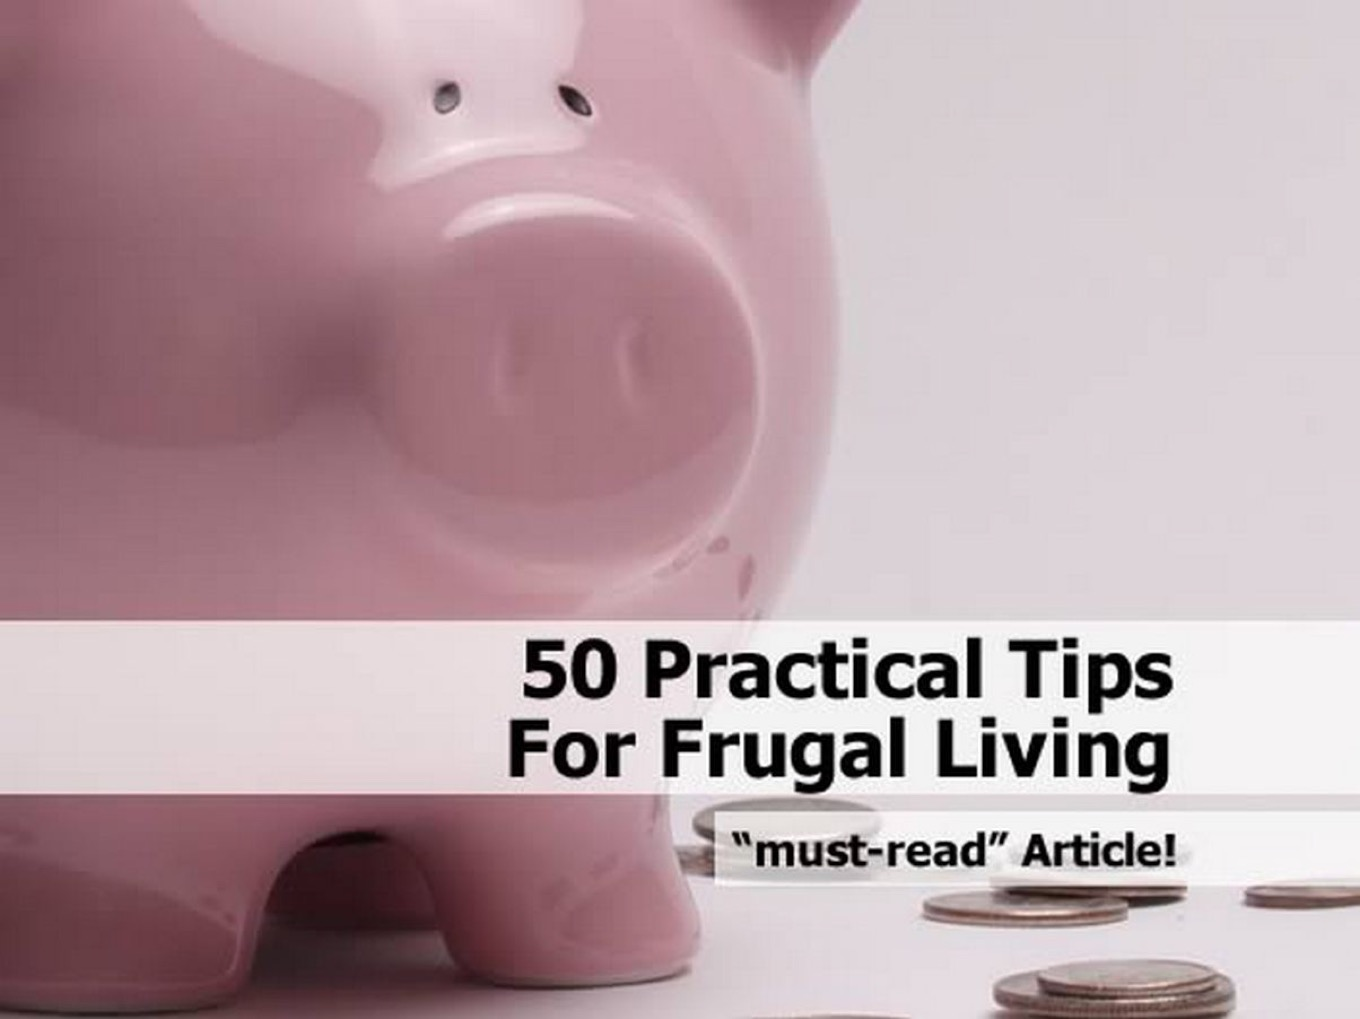 practical-tips-on-frugal-living-10